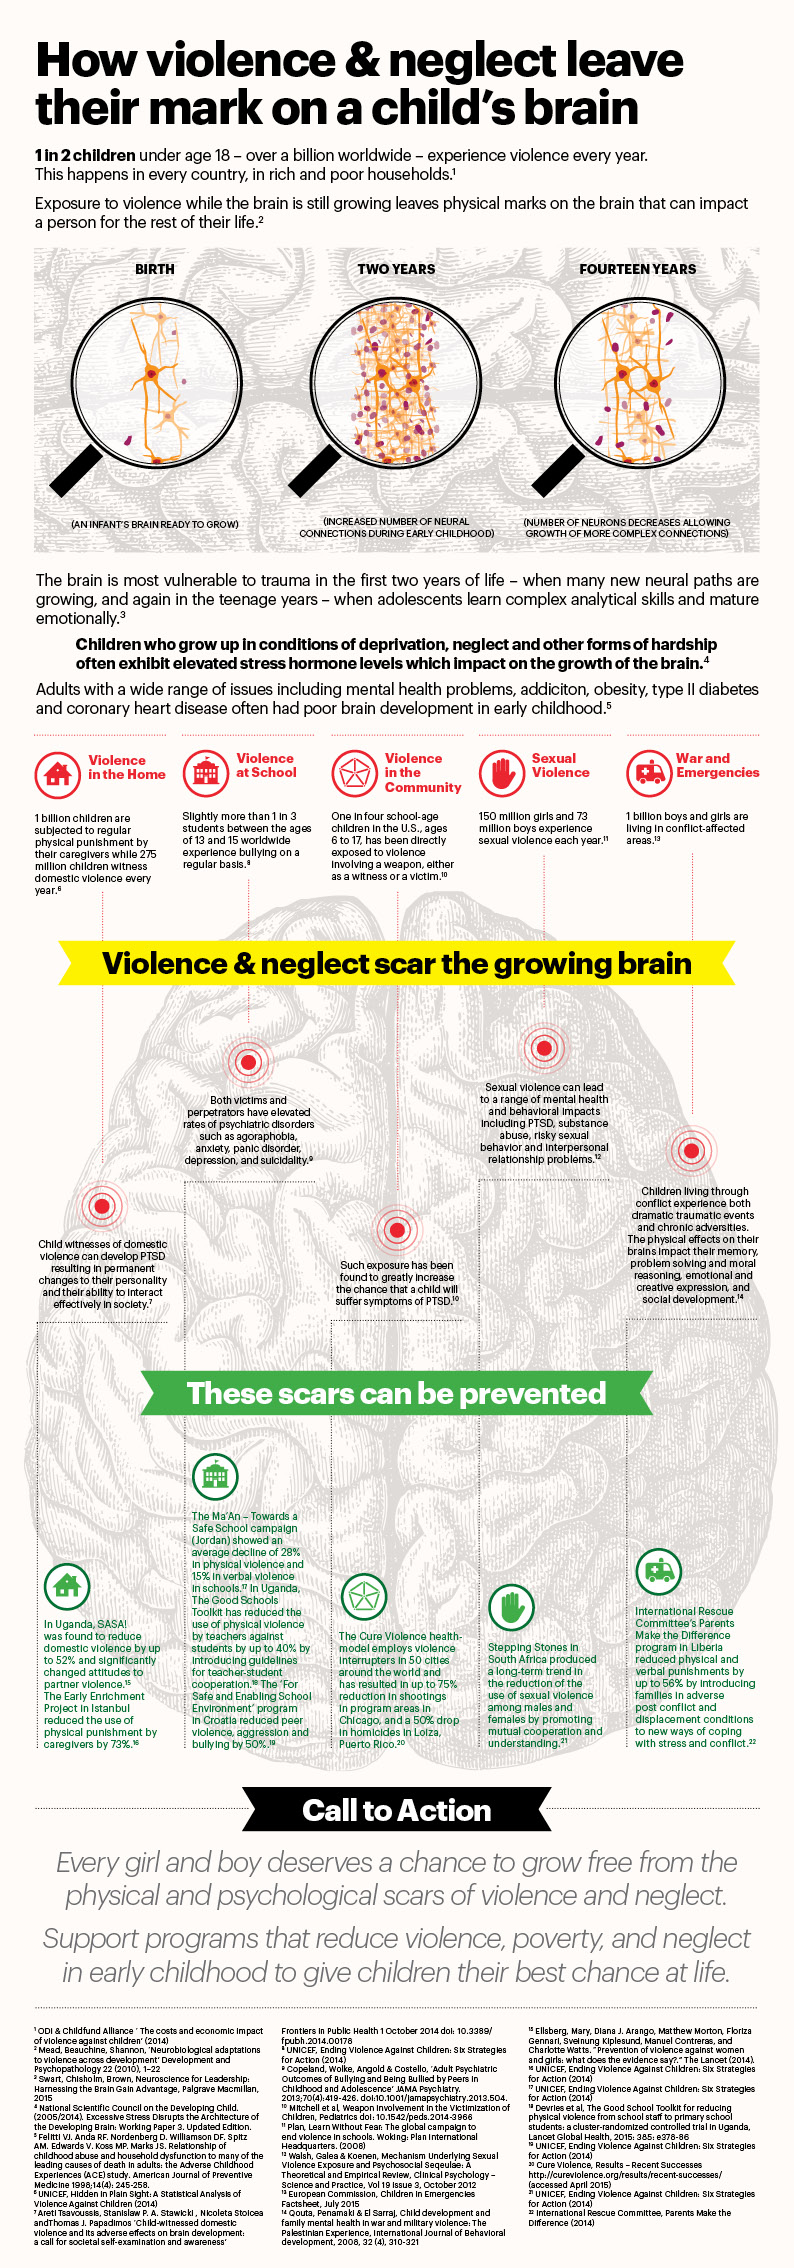 CLIENT:  Unbranded  PROJECT: How violence and neglect leave their mark on a child's brain (distributed for free use)